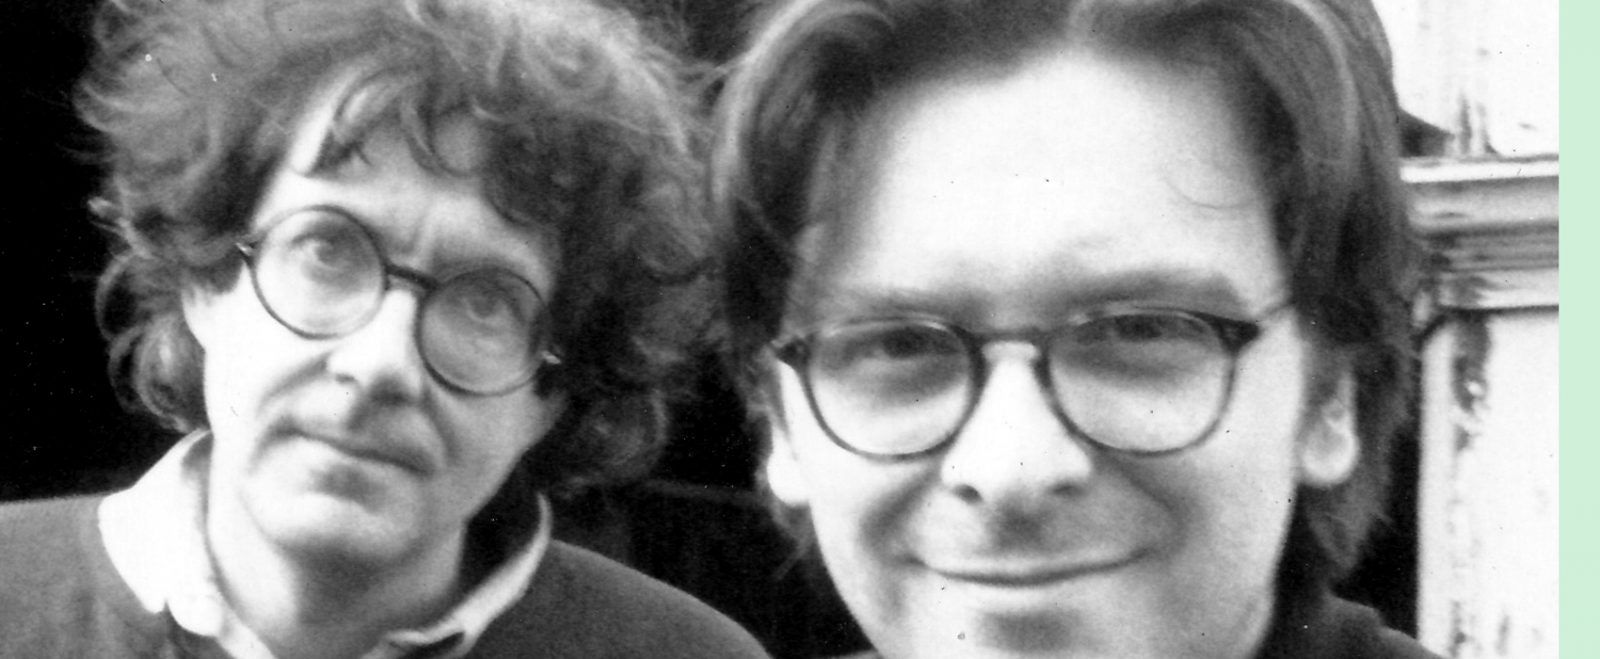 Norman Blake and Jad Fair